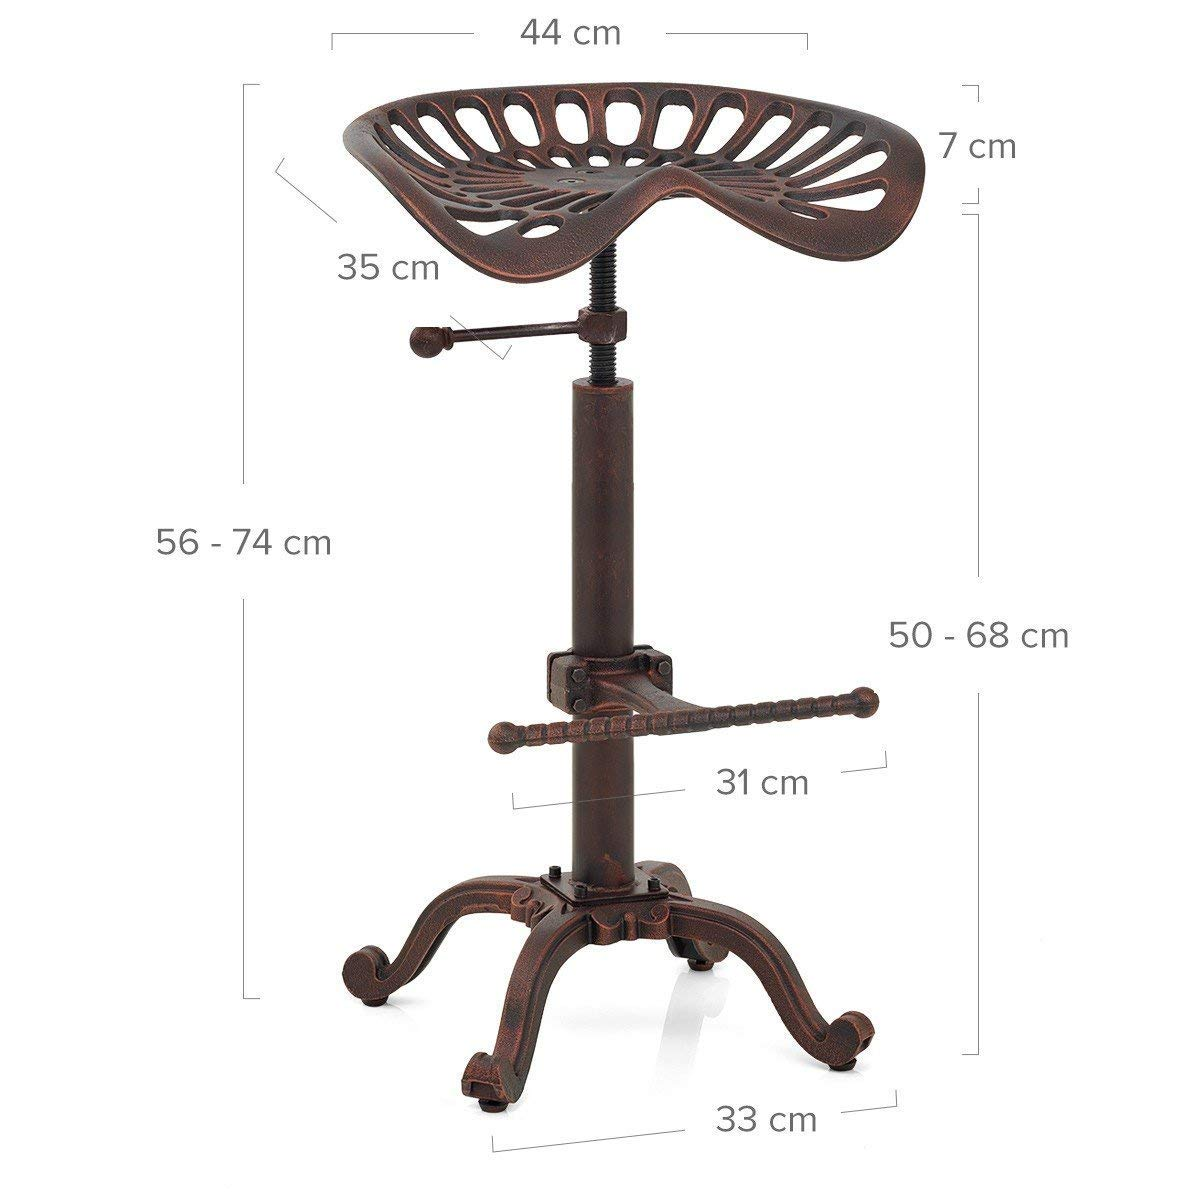 Phenomenal Details About Antique Industrial Swivel Bar Stool Tractor Seat Adjustable Counter Height Stool Gamerscity Chair Design For Home Gamerscityorg